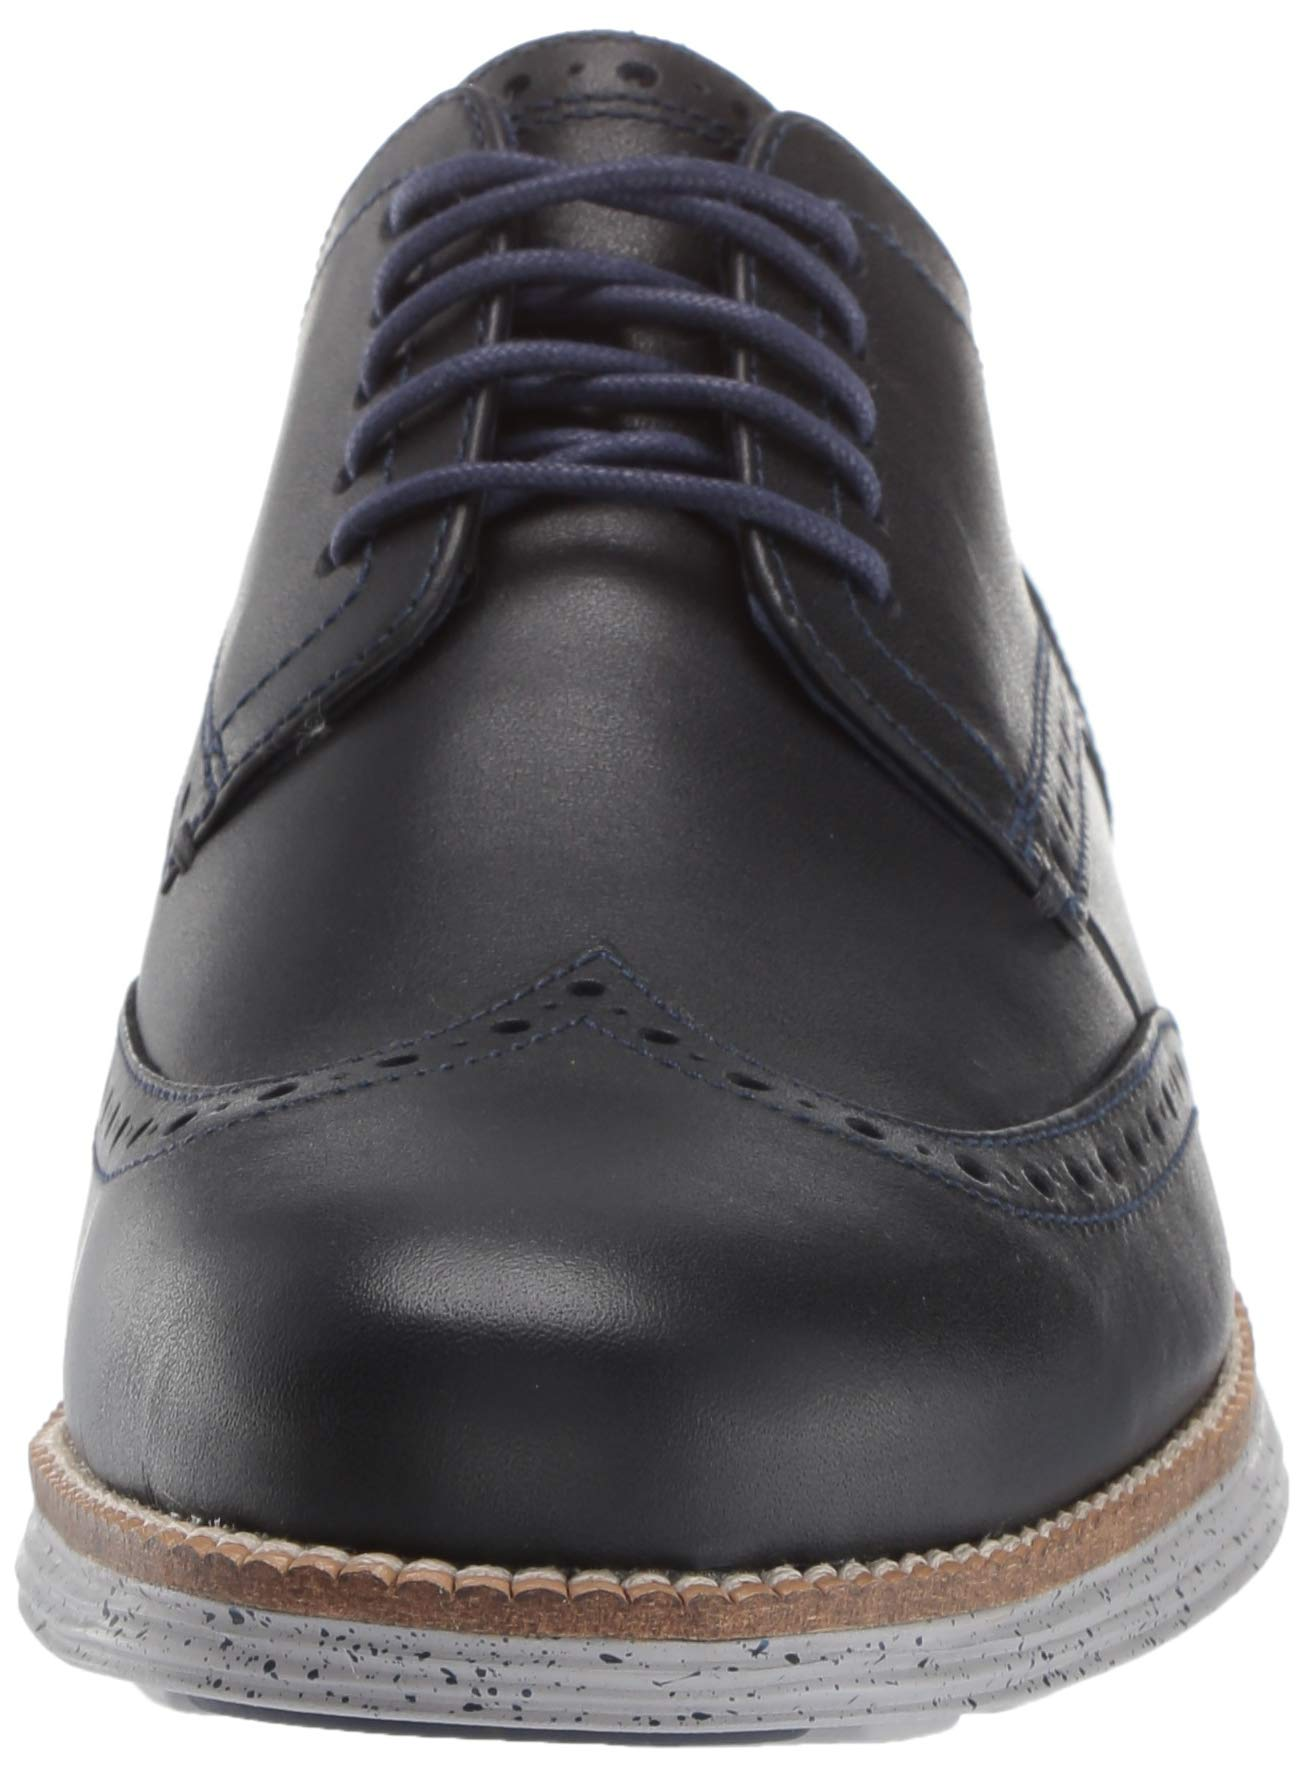 66ca0bae86c86 Cole Haan Men s Original Grand Shortwing Oxford Shoe – Men s Oxford ...